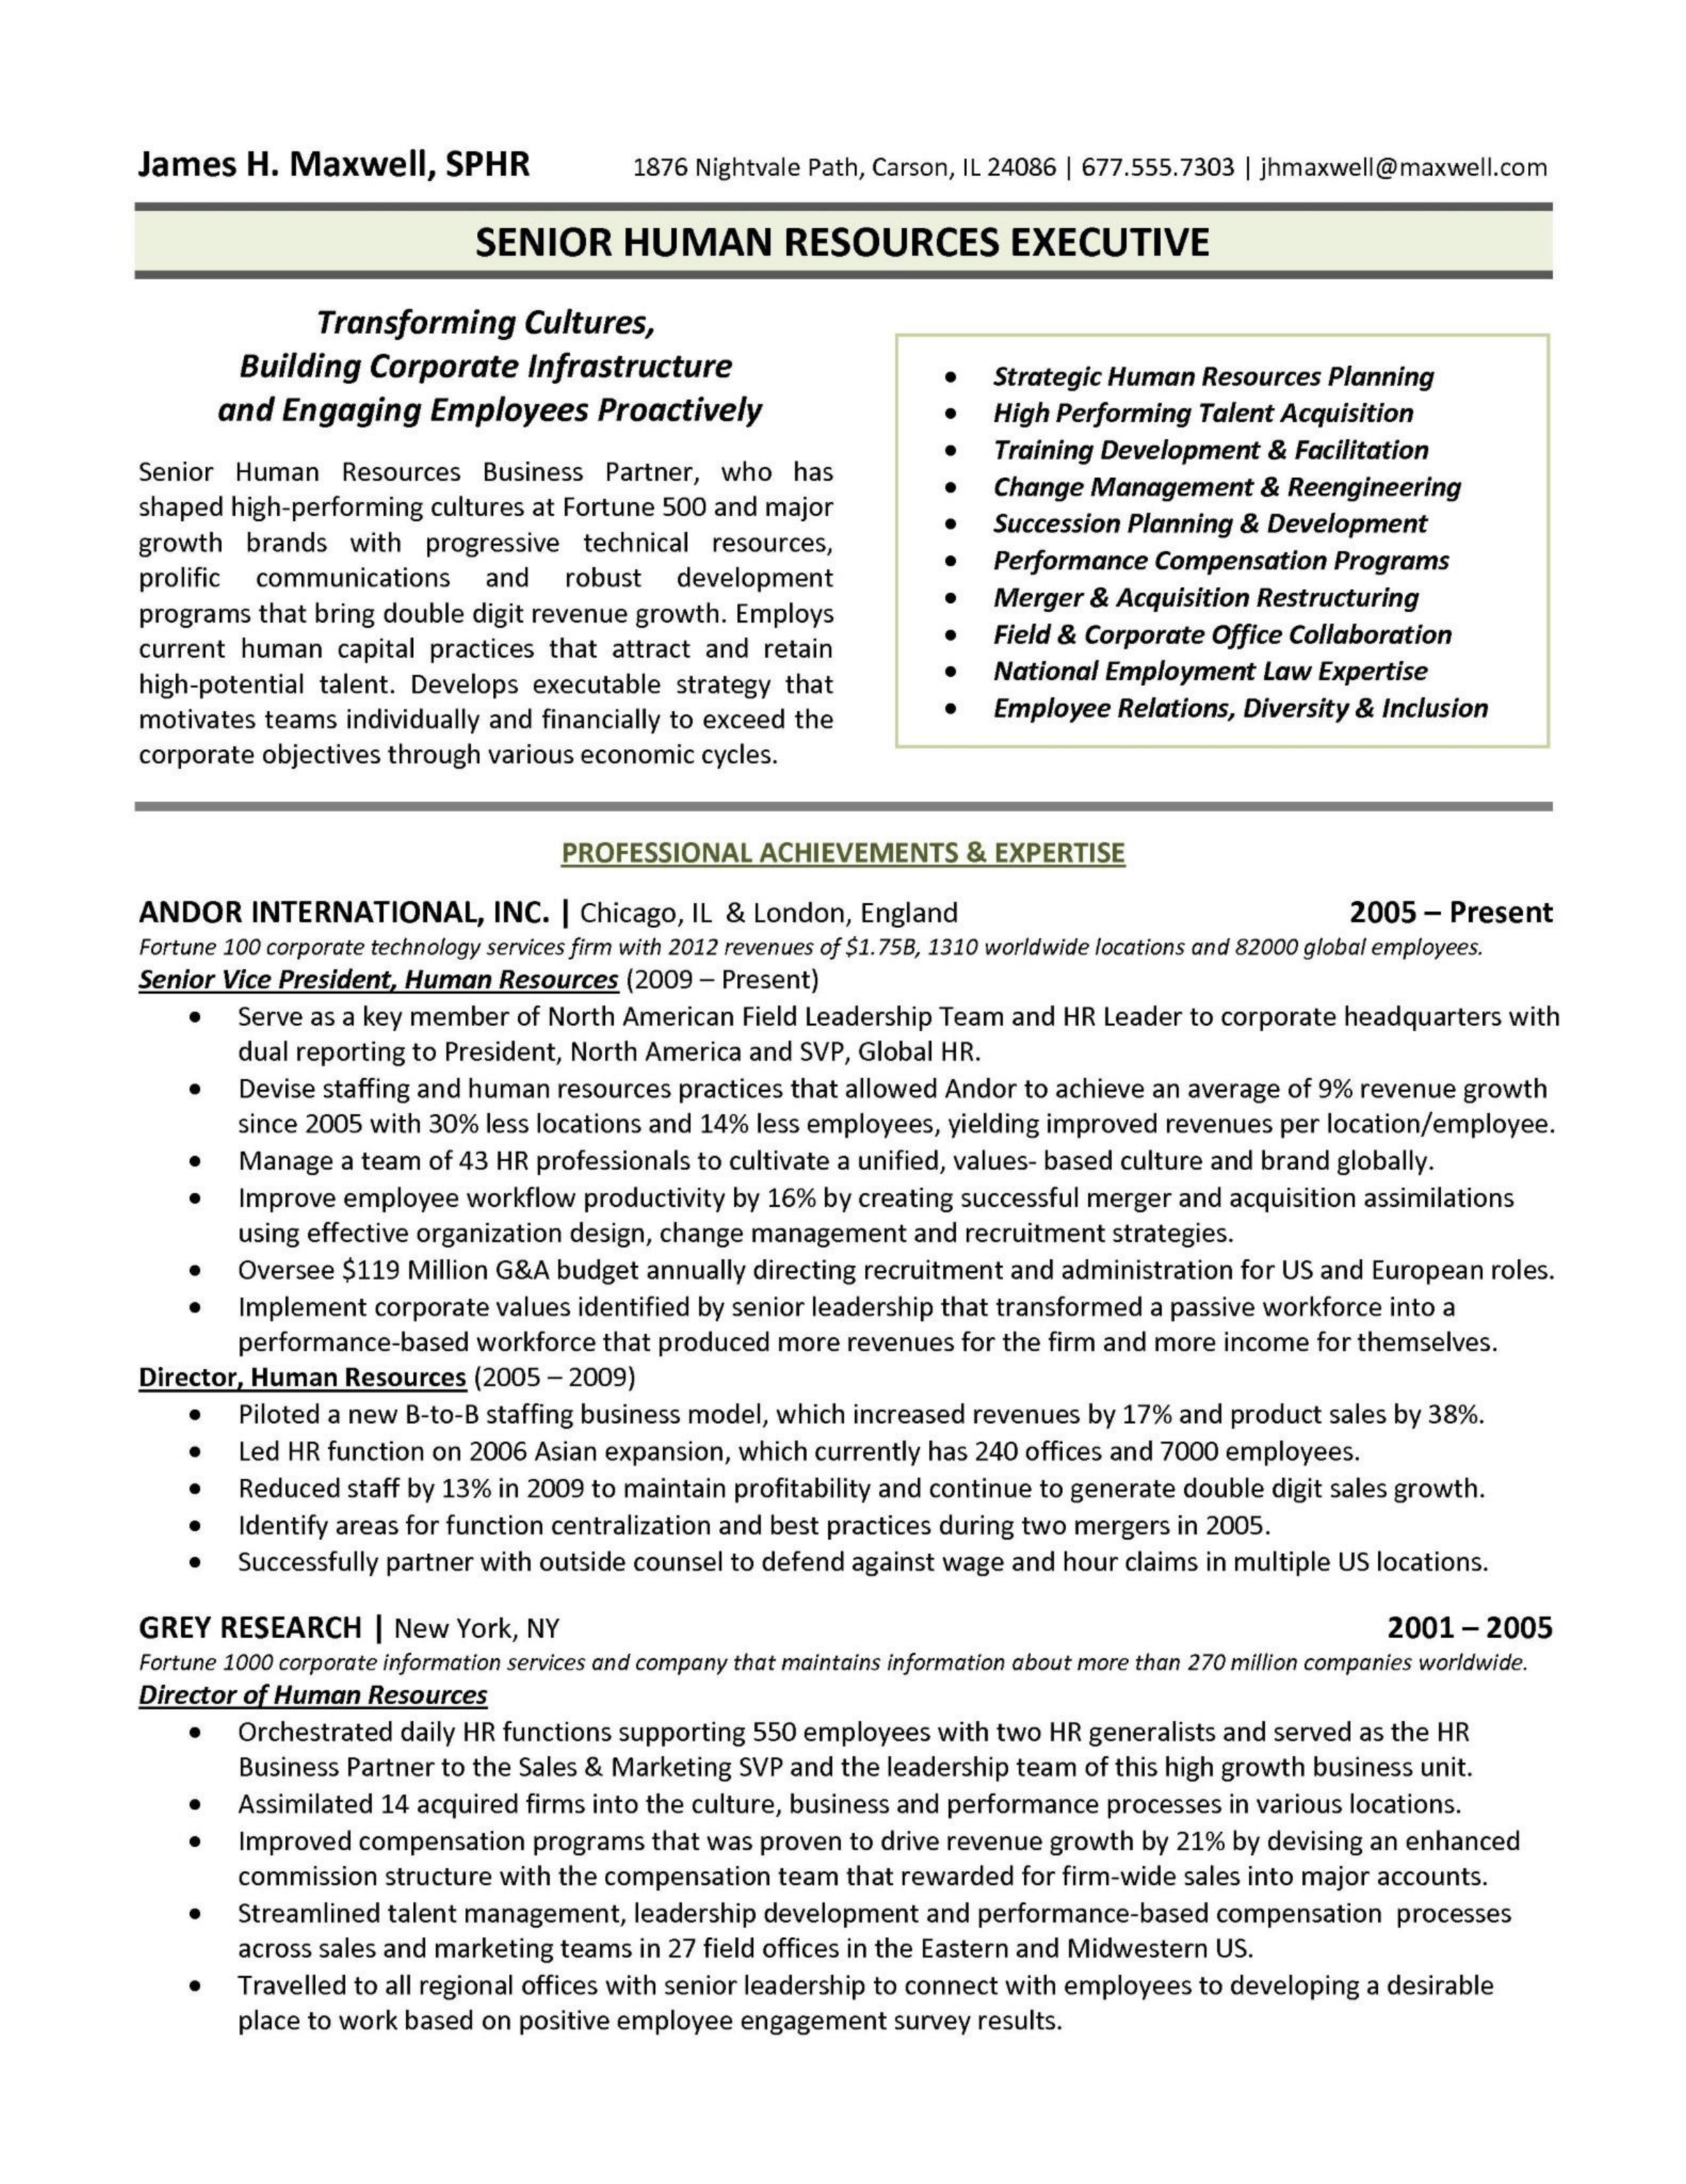 executive resume professional summary